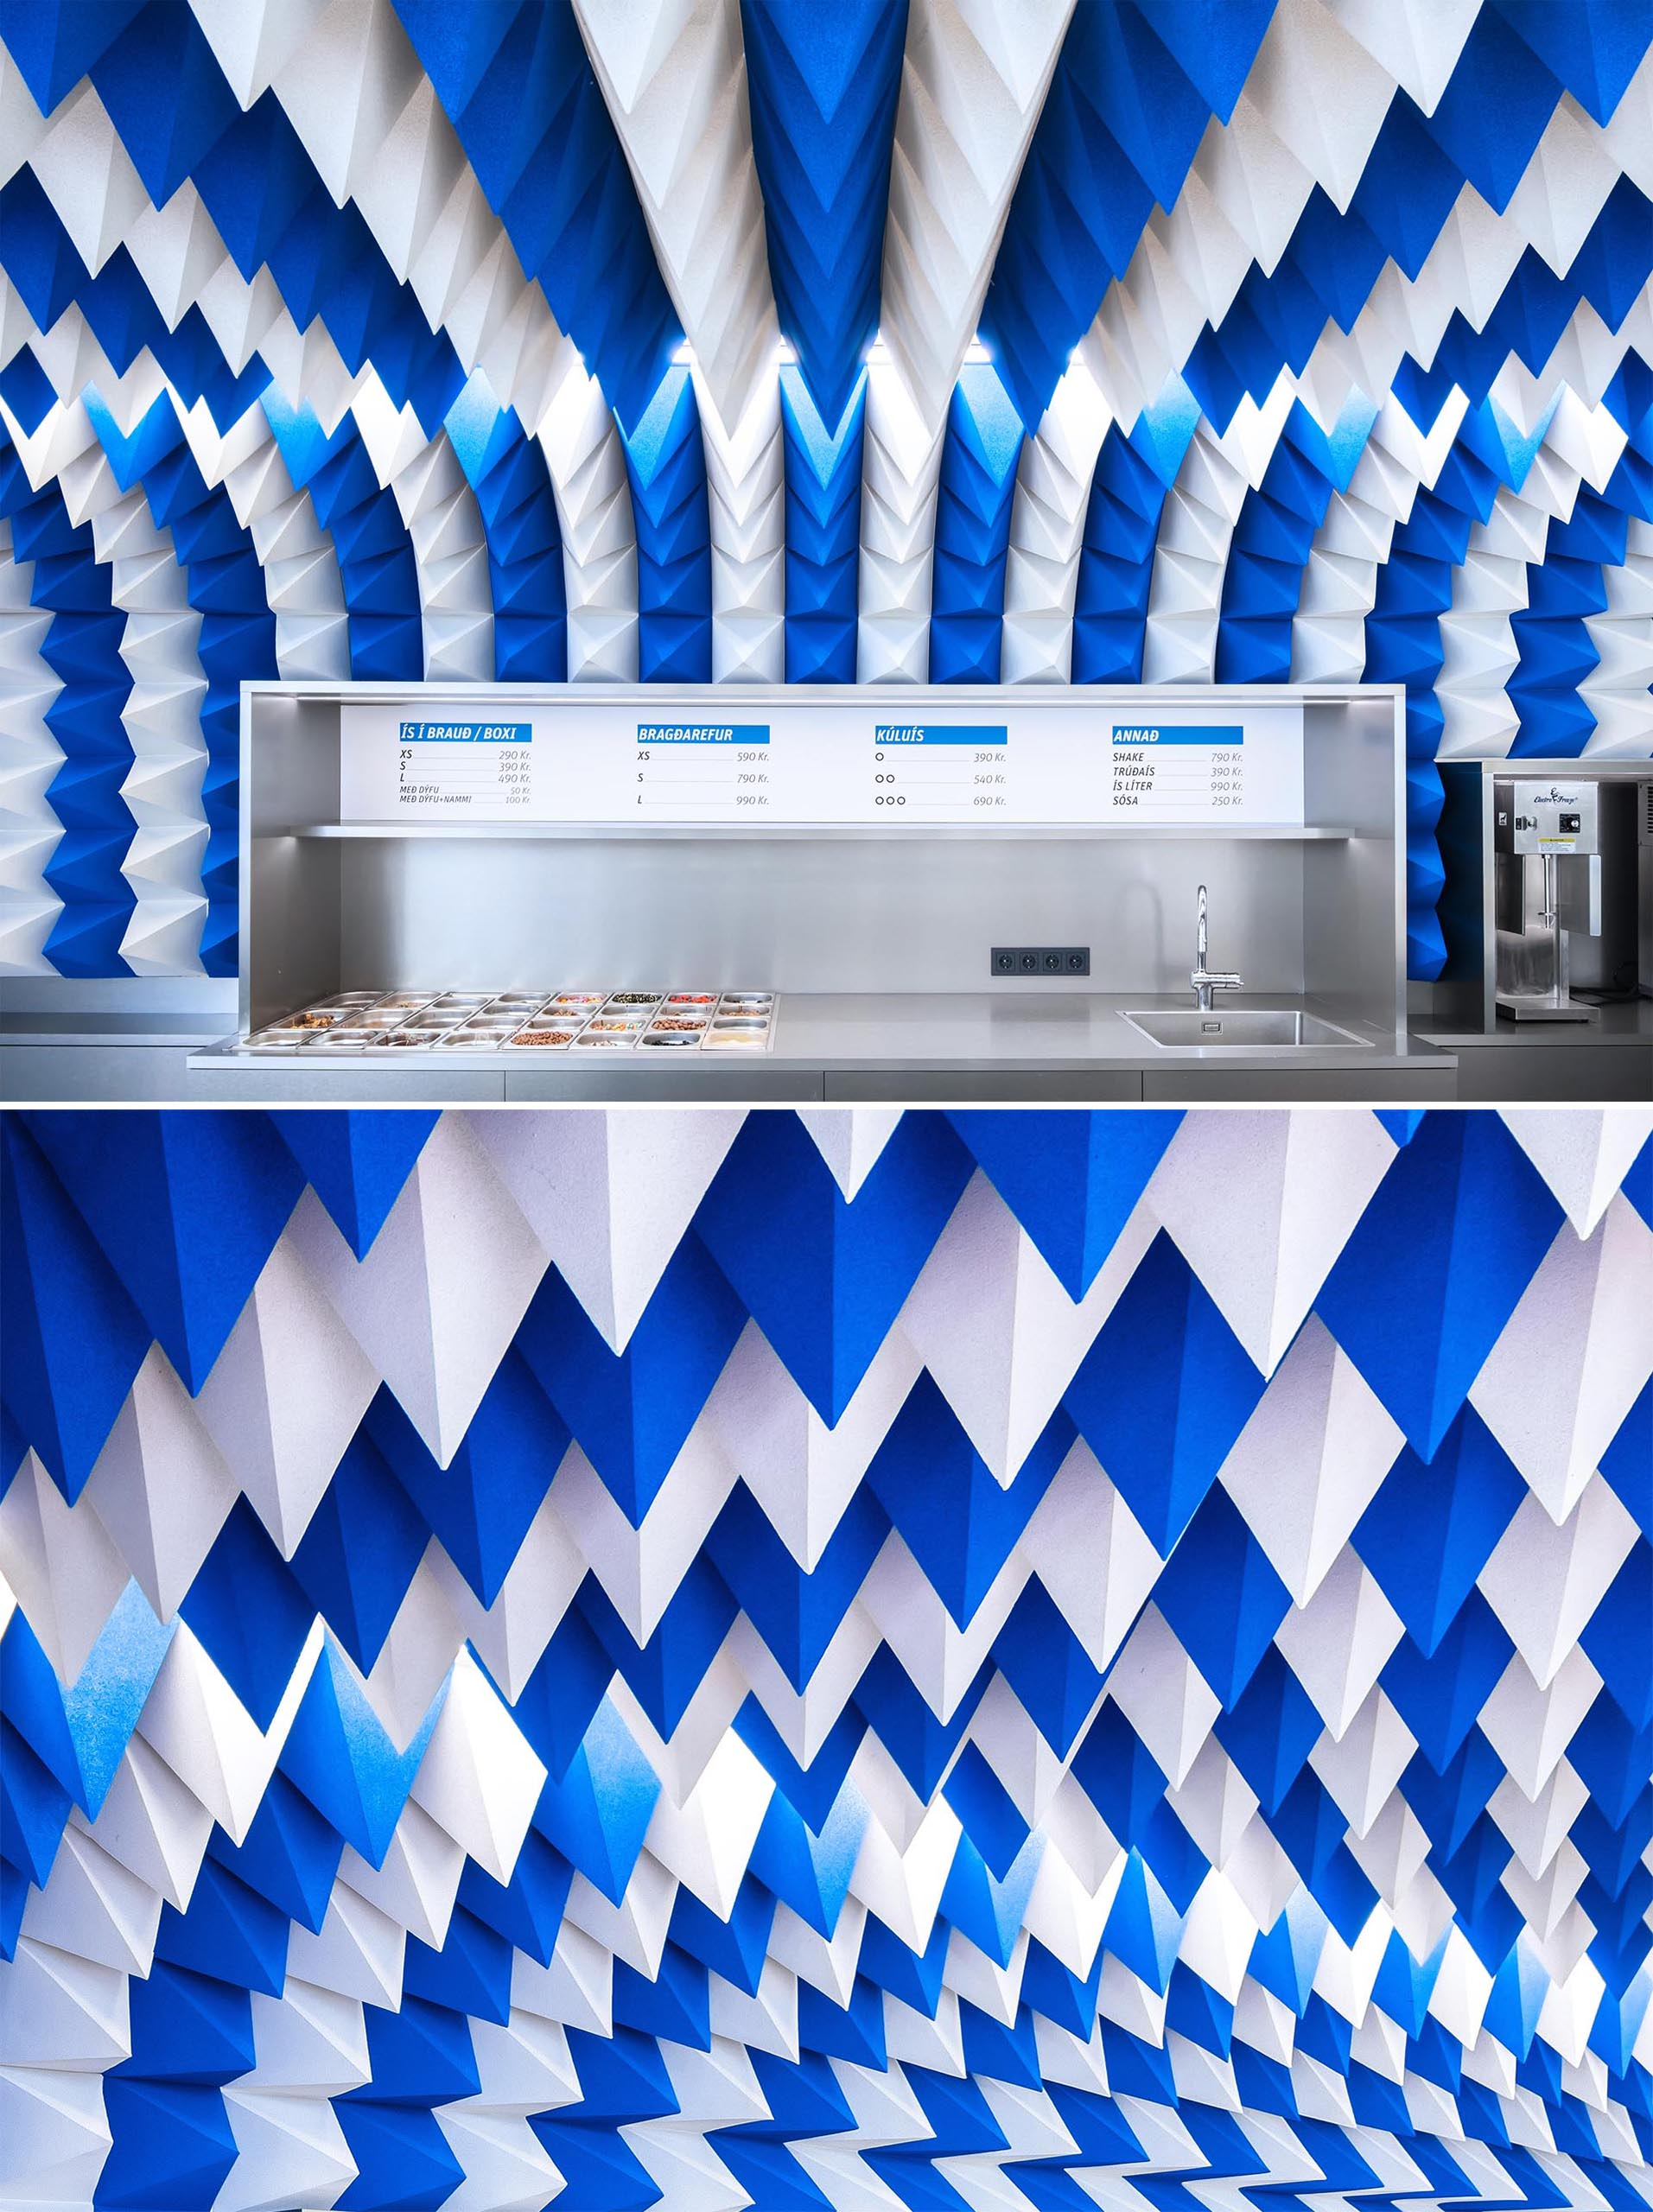 A modern ice cream store with a sculptural ceiling installation made from blue and white foam pyramids.